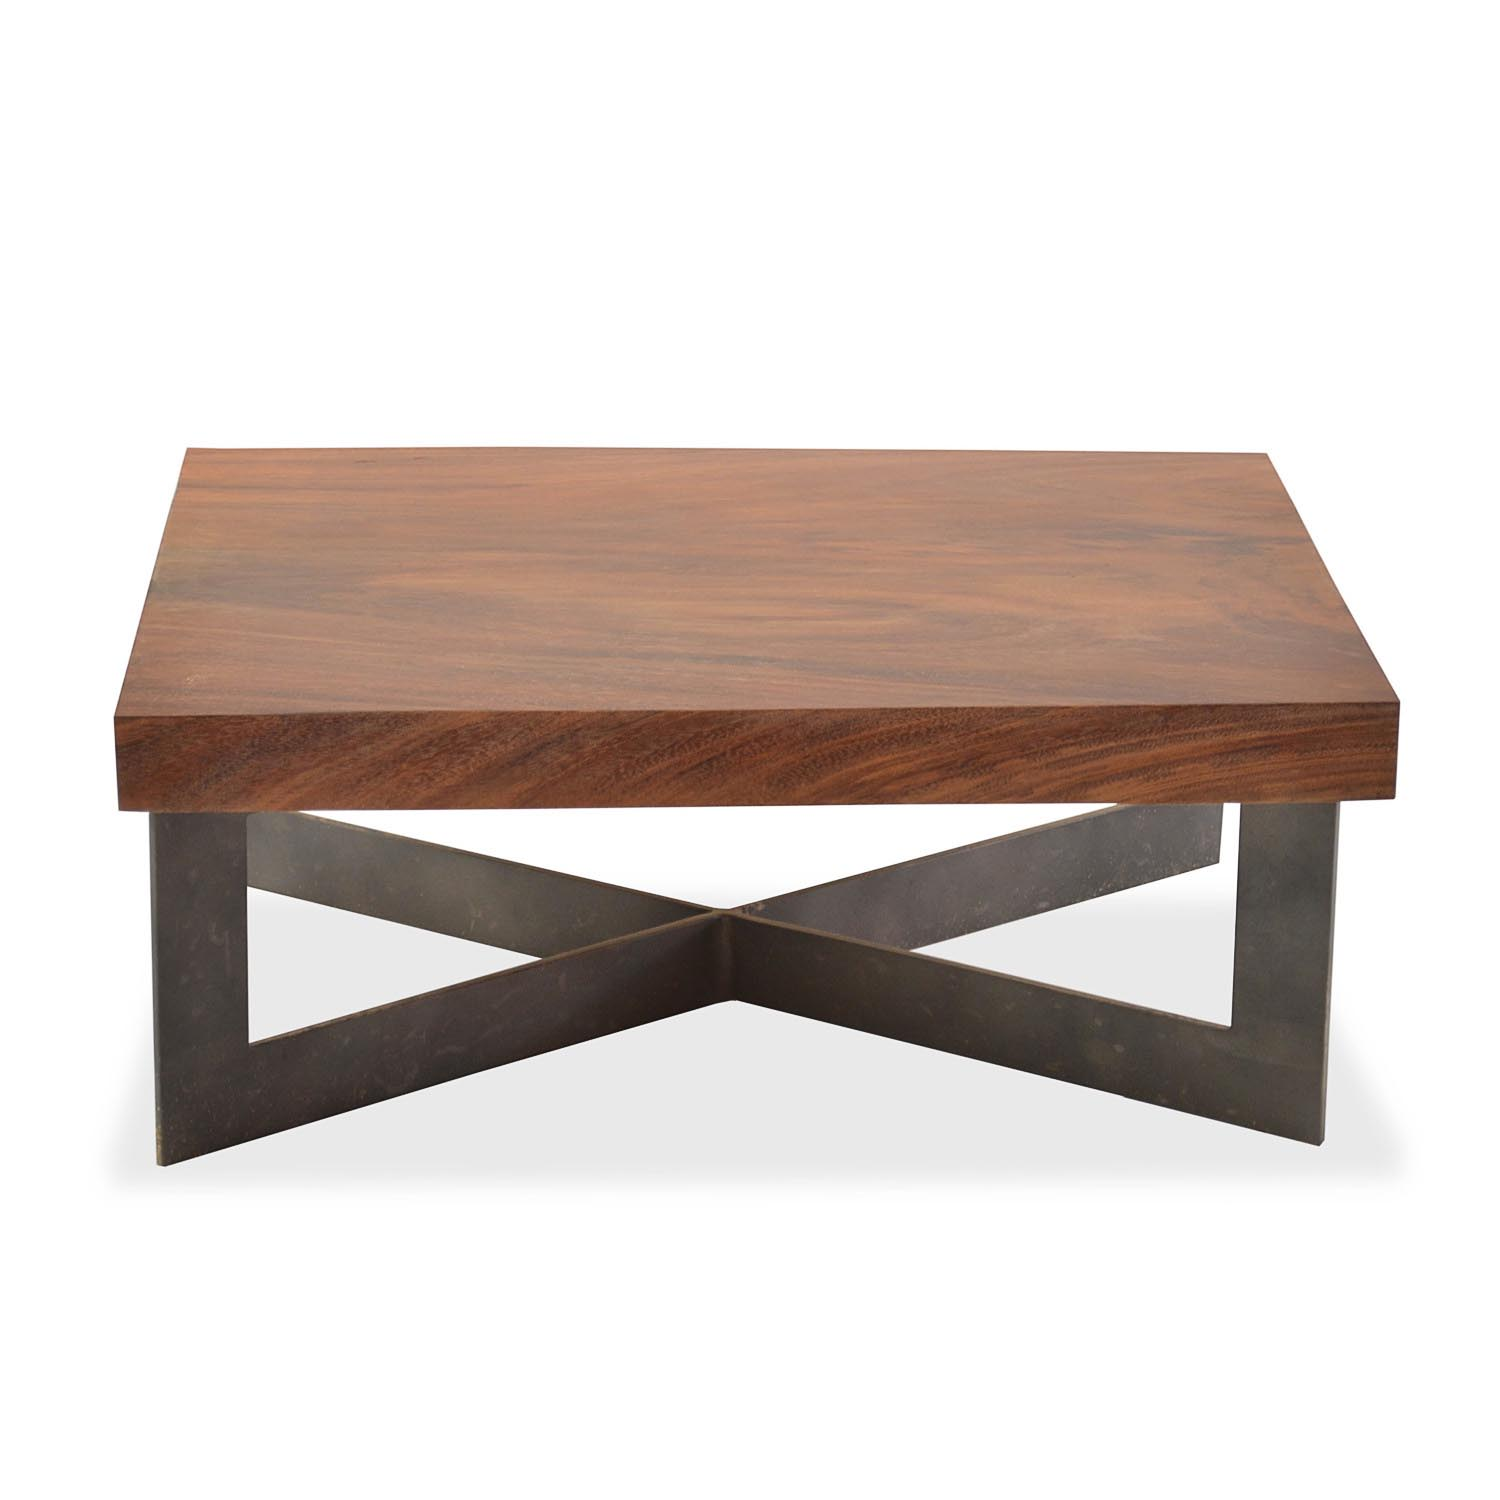 Solid wood slab coffee table coffee table design ideas for Solid wood coffee table